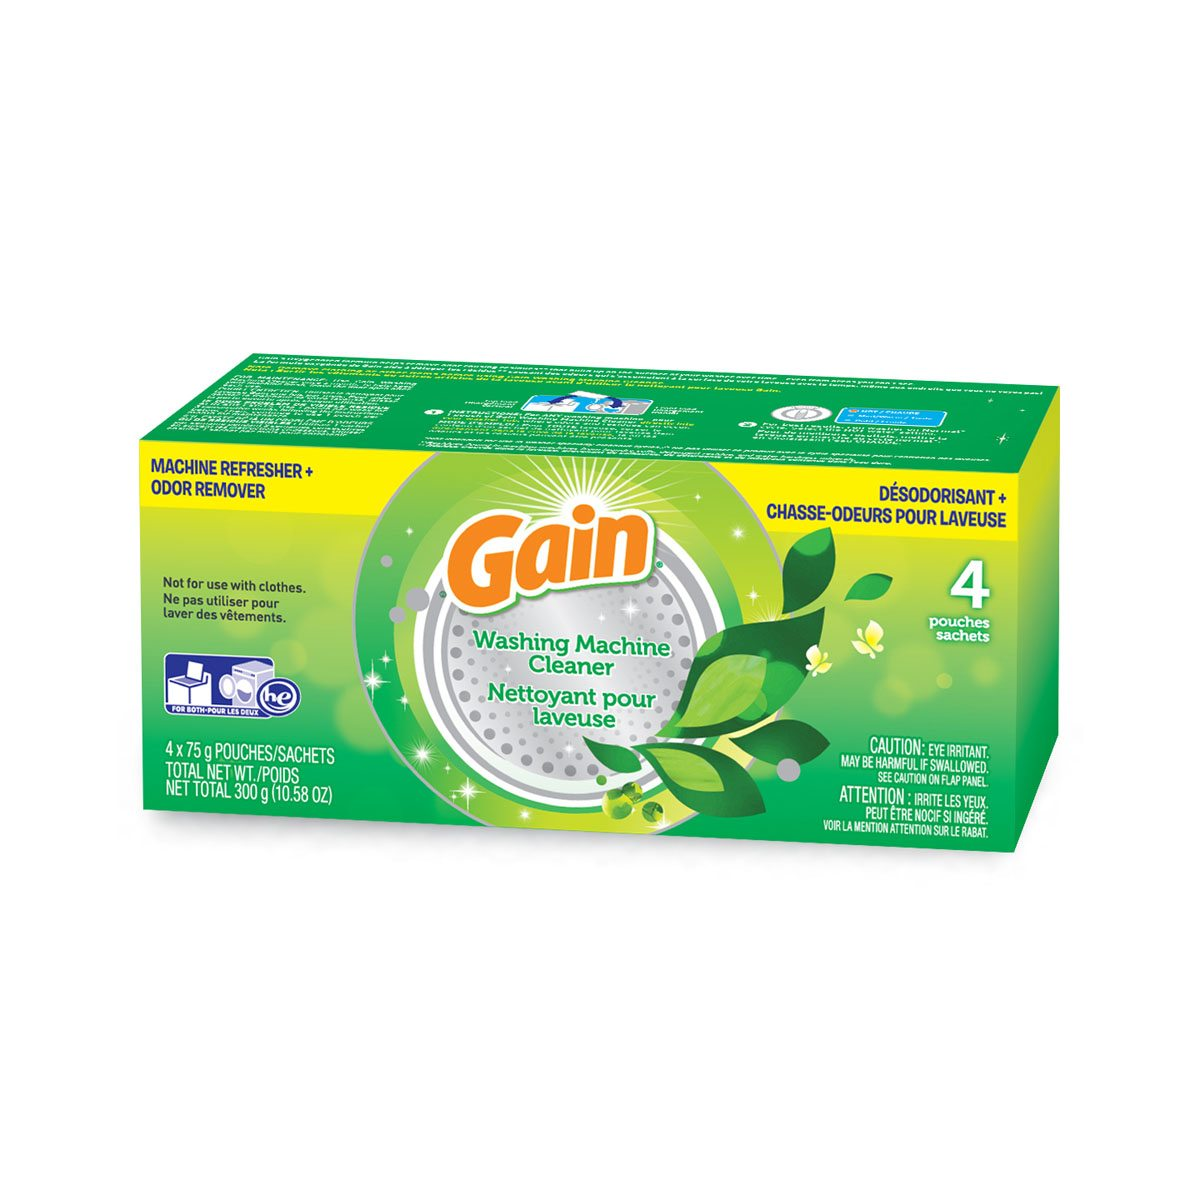 Washing Machine Cleaner with Gain Original Scent